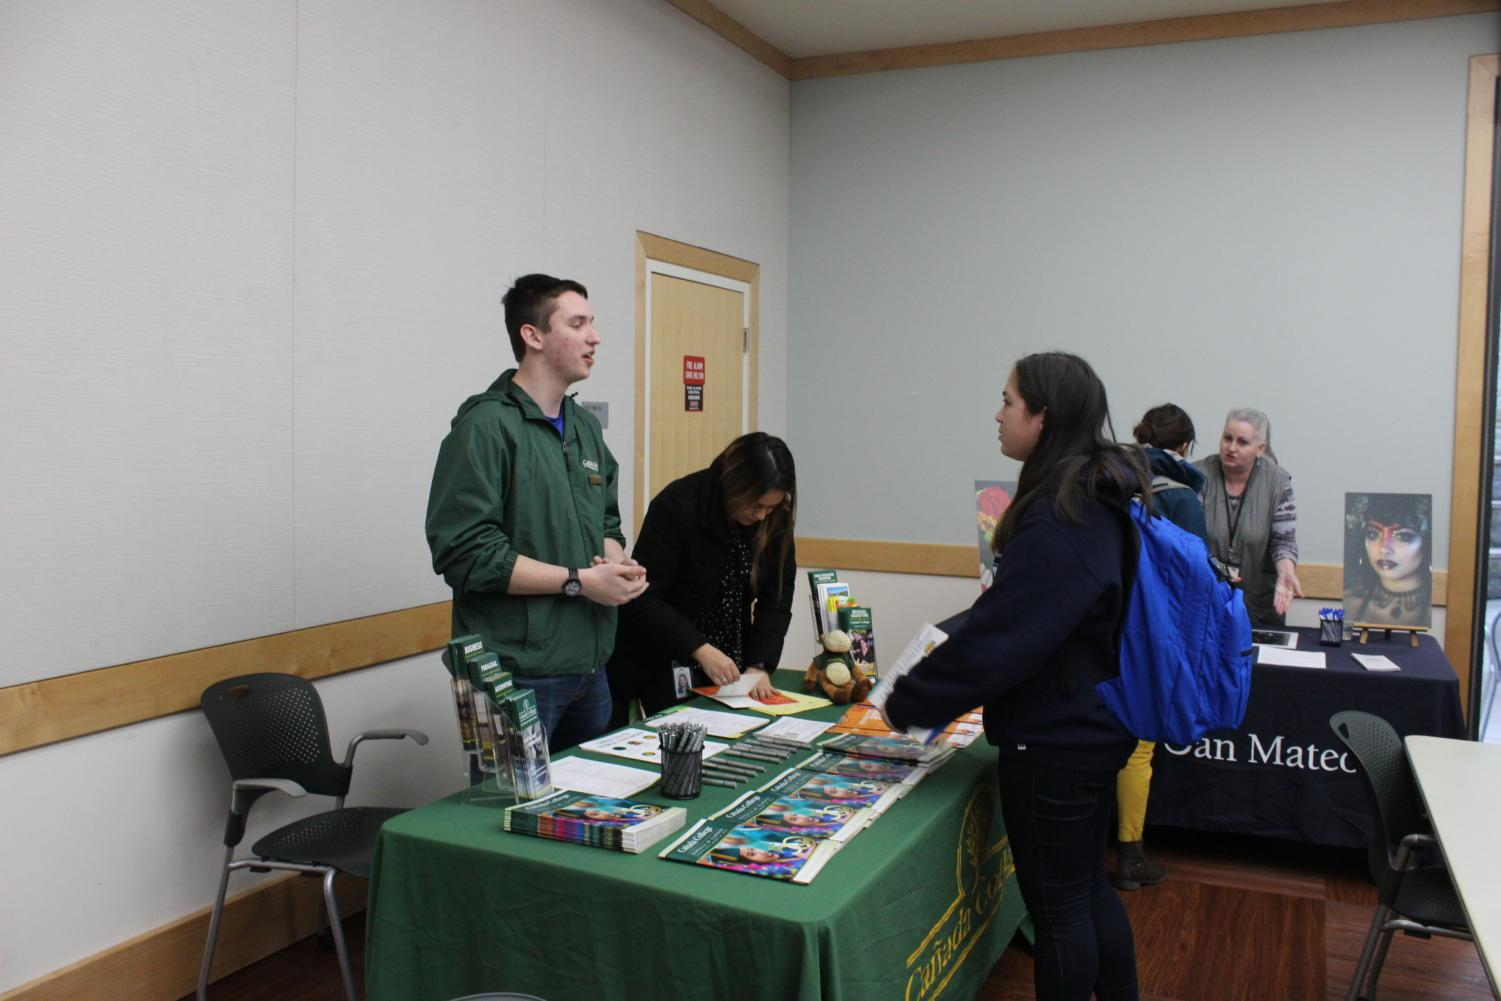 Life hacks meeting gives students information about alternatives to a four year college